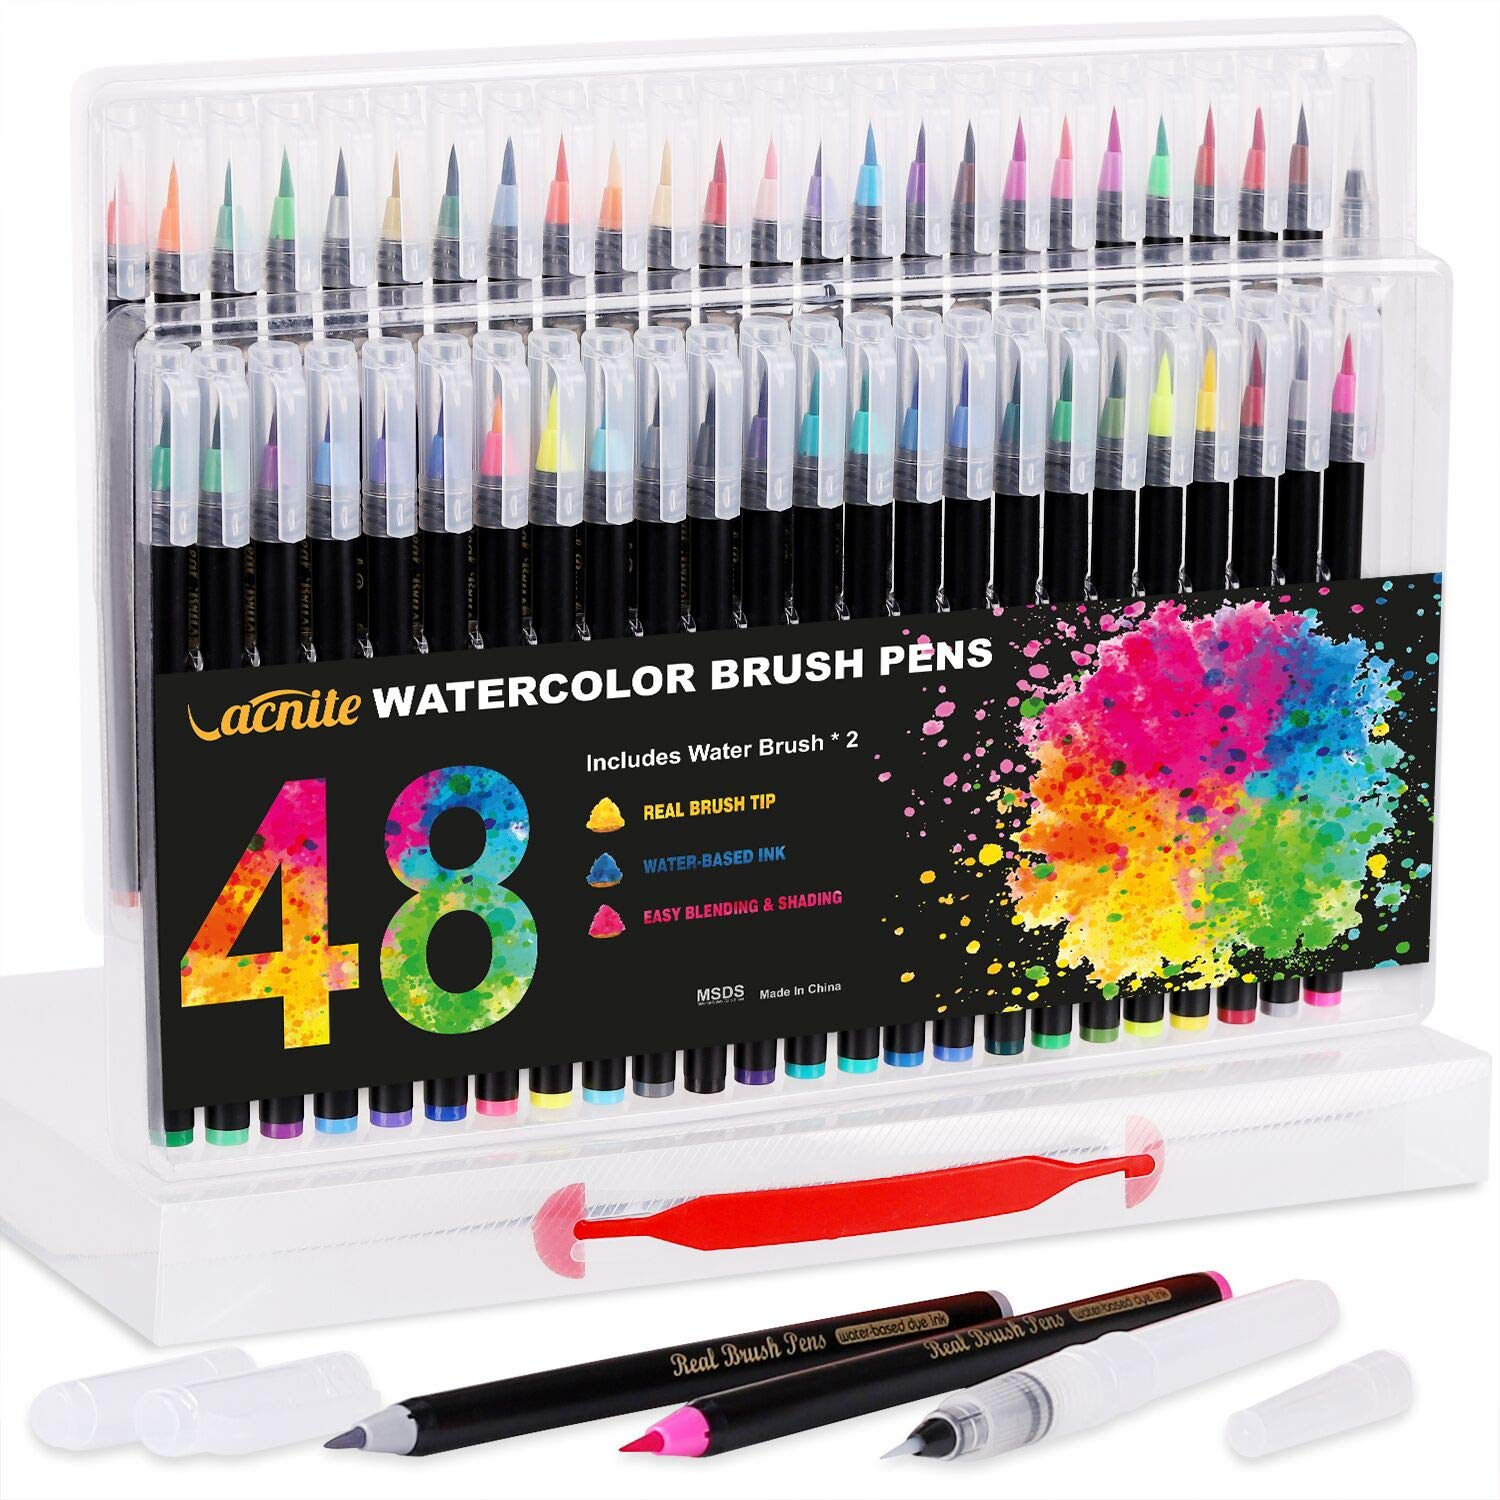 Vacnite Watercolor Brush Pens, Set of 48 Colors Watercolor Markers and 2 Water Pens, Flexible Real Brush Tips, Paint Pens for Artists, Beginners, Adults and Kids Coloring, Calligraphy and Drawing